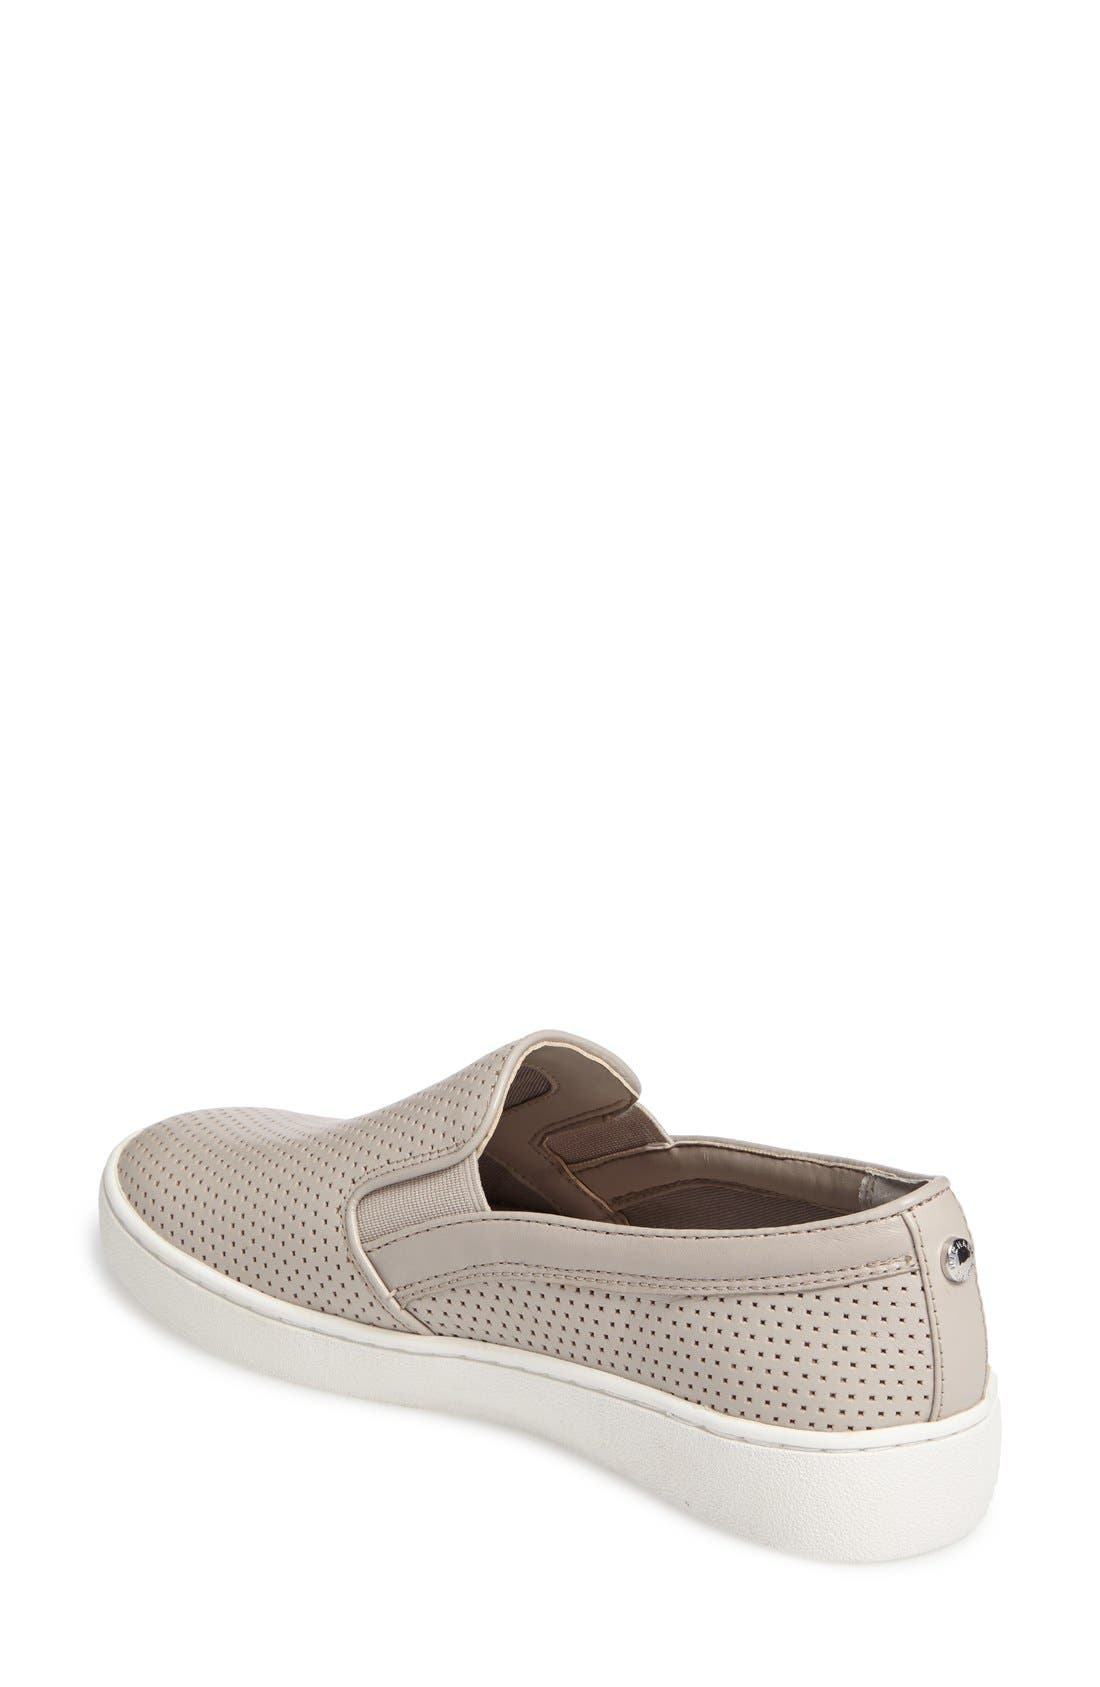 Keaton Slip-On Sneaker,                             Alternate thumbnail 216, color,